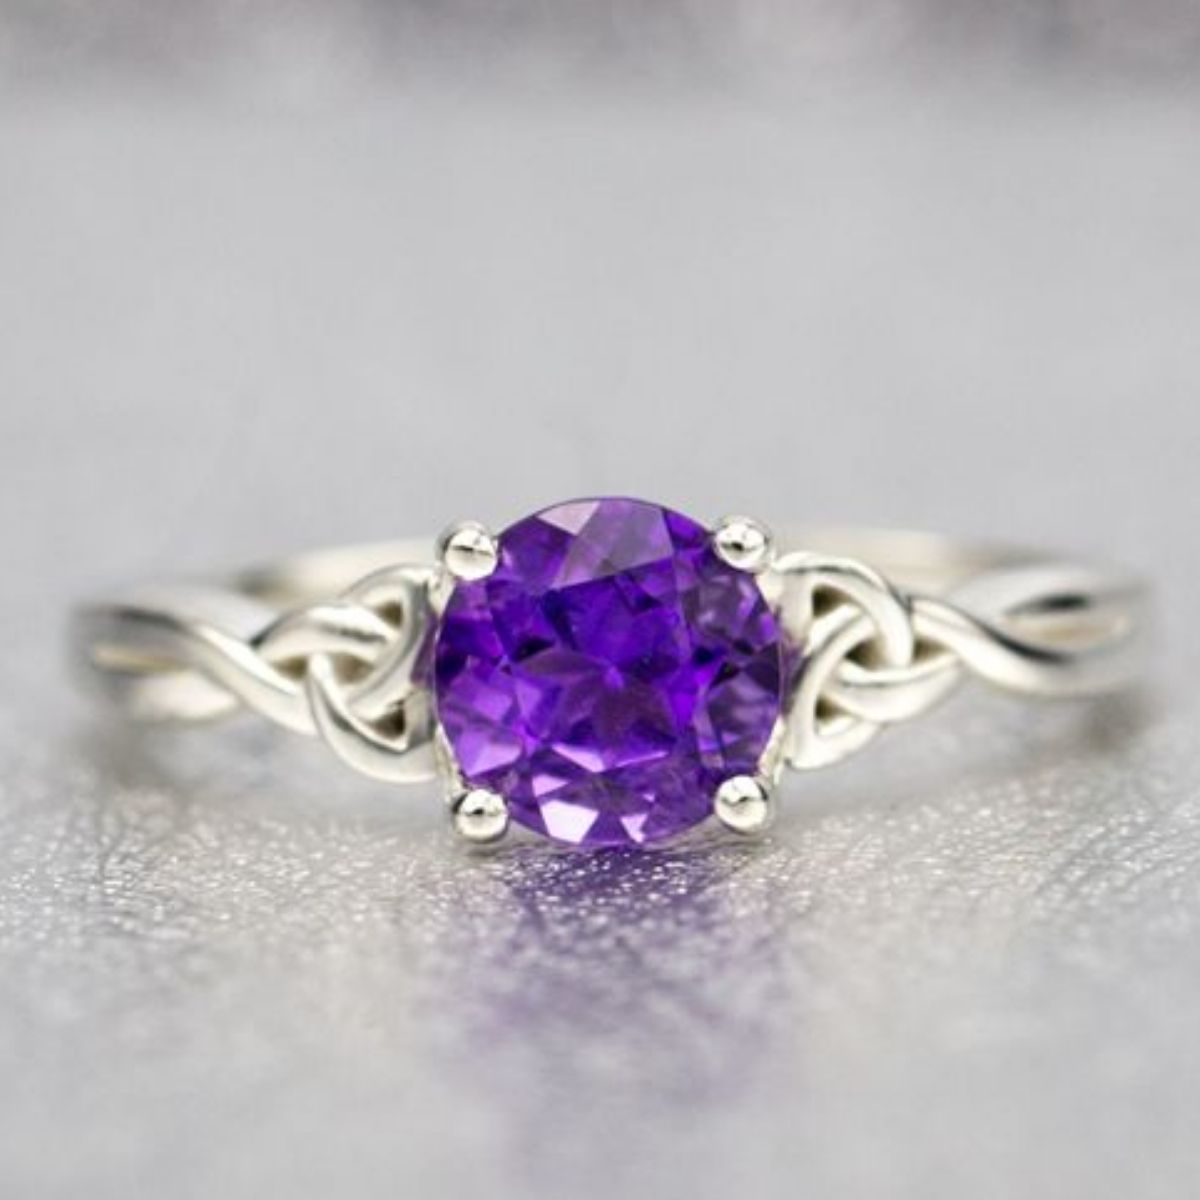 silver engagement lajerrio sterling purple for jewelry promise her amethyst round cut rings